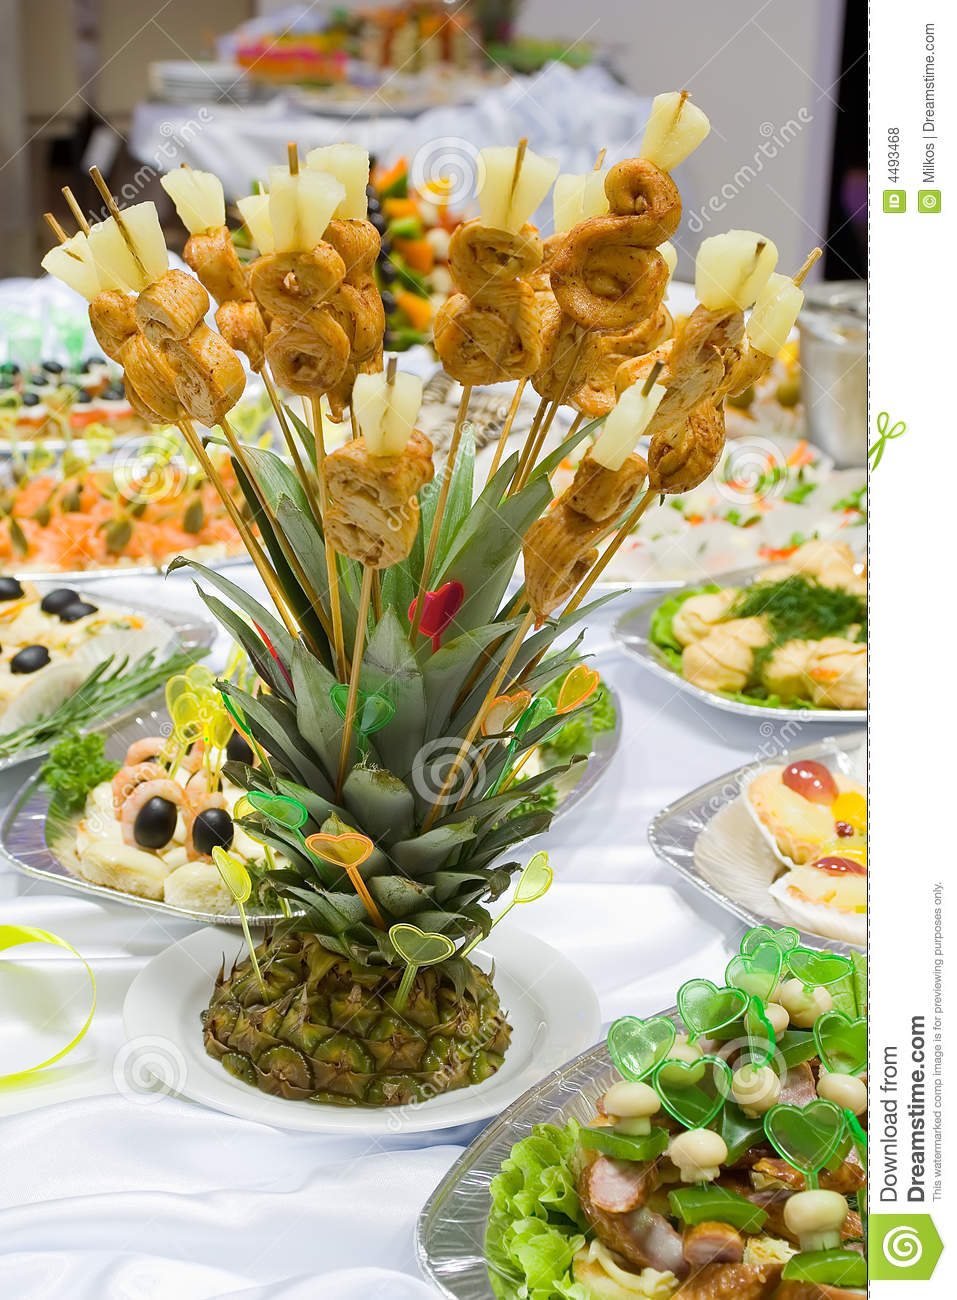 Ananas Buffet catering buffet style - pineapple stock photo - image of delicious